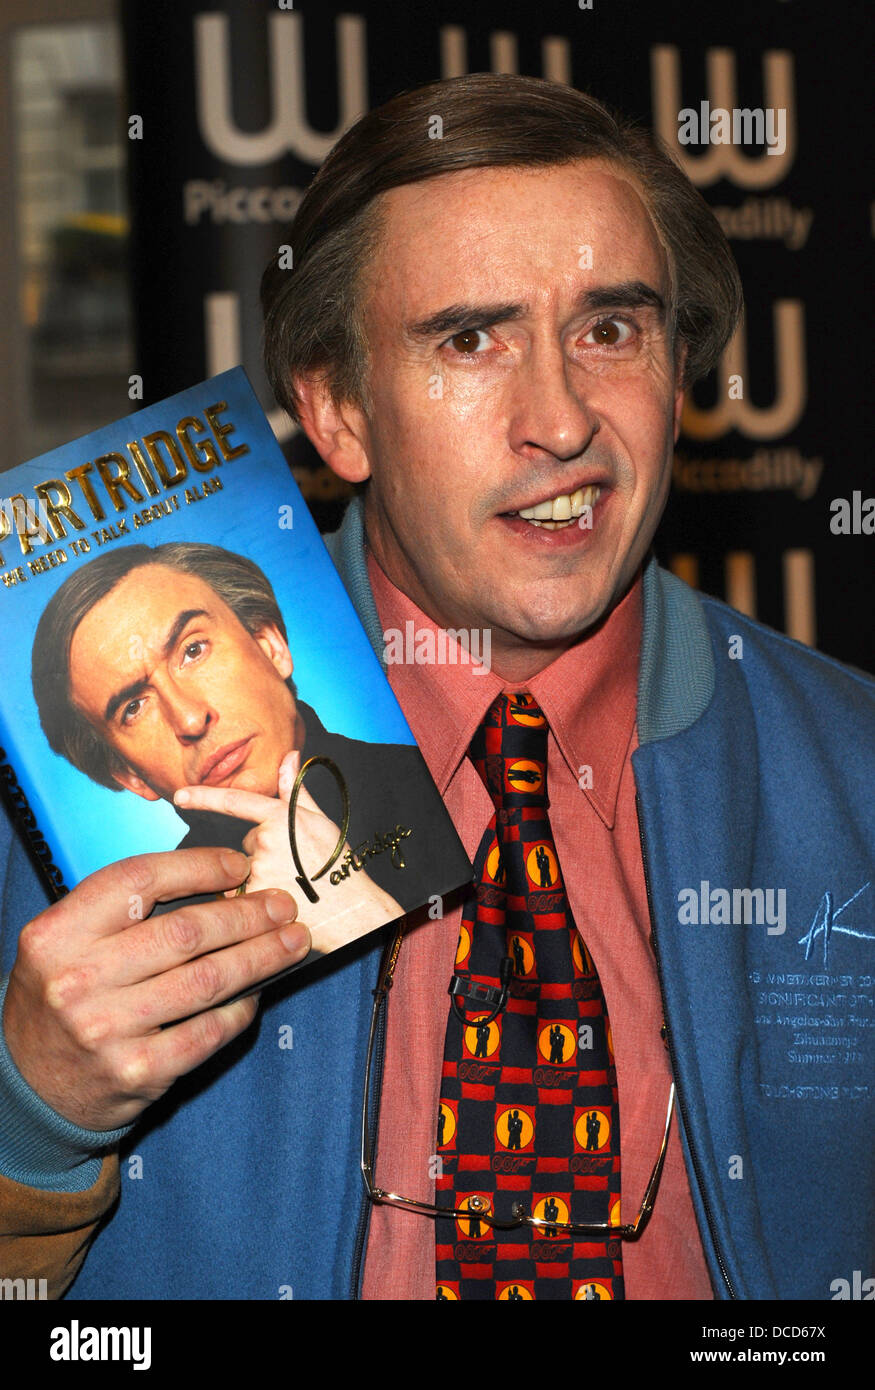 Steve Coogan aka Alan Partridge at a book signing at Waterstone's, Piccadilly London, England - 04.10.11 - Stock Image